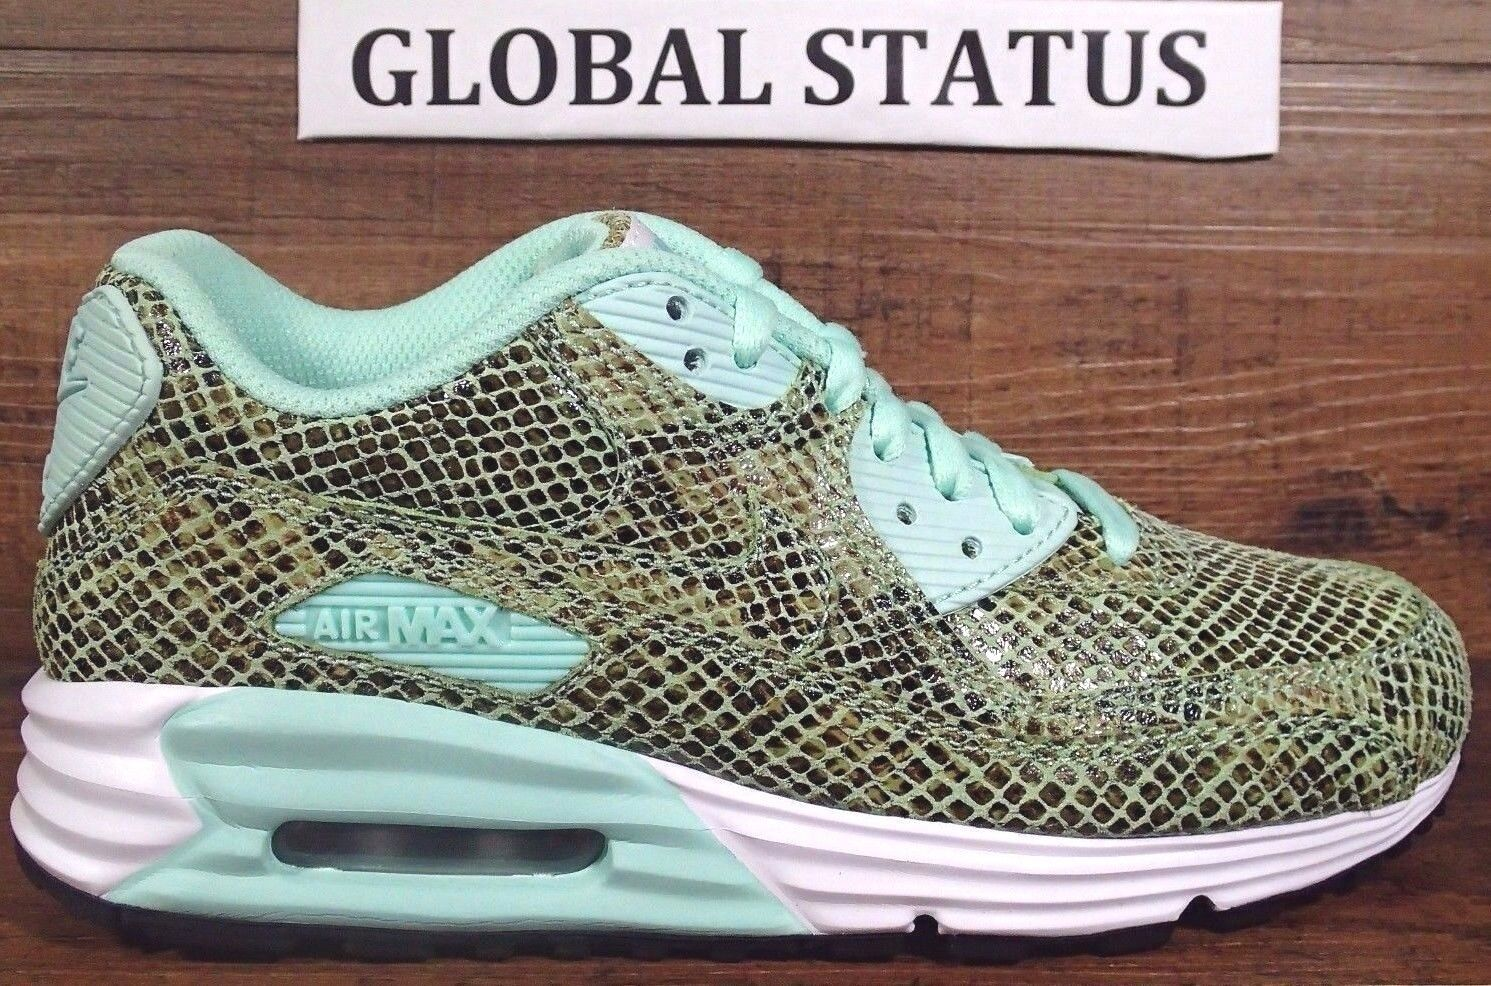 WOMENS NIKE ID AIR MAX LUNAR 90 SNAKESKIN CUSTOM RUNNING SHOES Price reduction